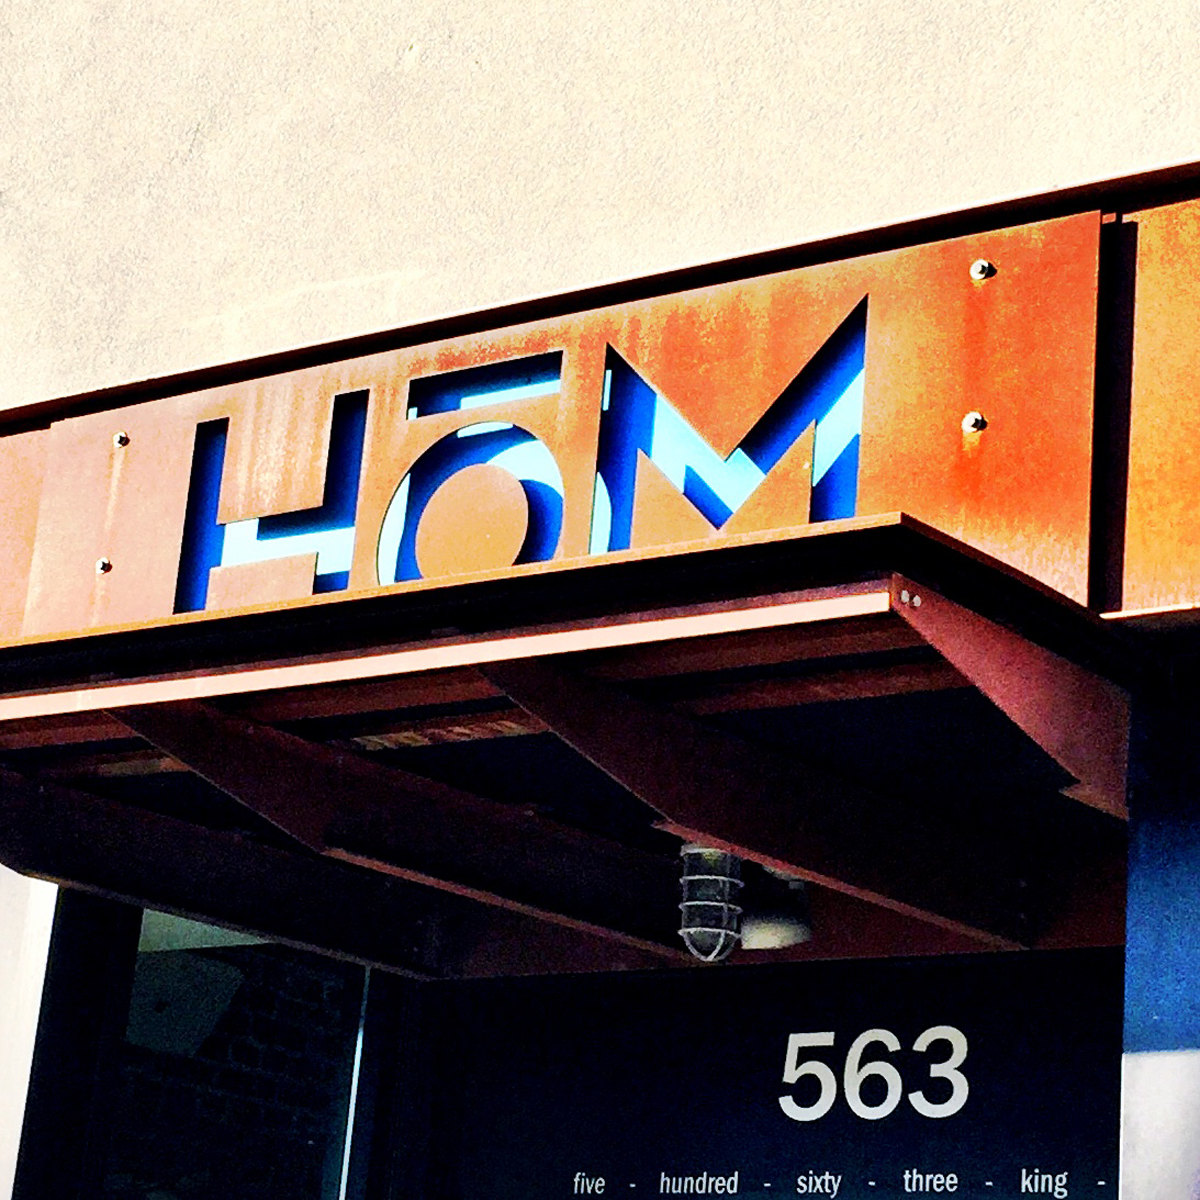 I love this sign.  That orange metal is called cor-ten steel.  It forms a natural rust finish that actually protects the metal.  HoM has great burgers, delicious cocktails and a couple ping-pong tables in the back.  What's not to like?